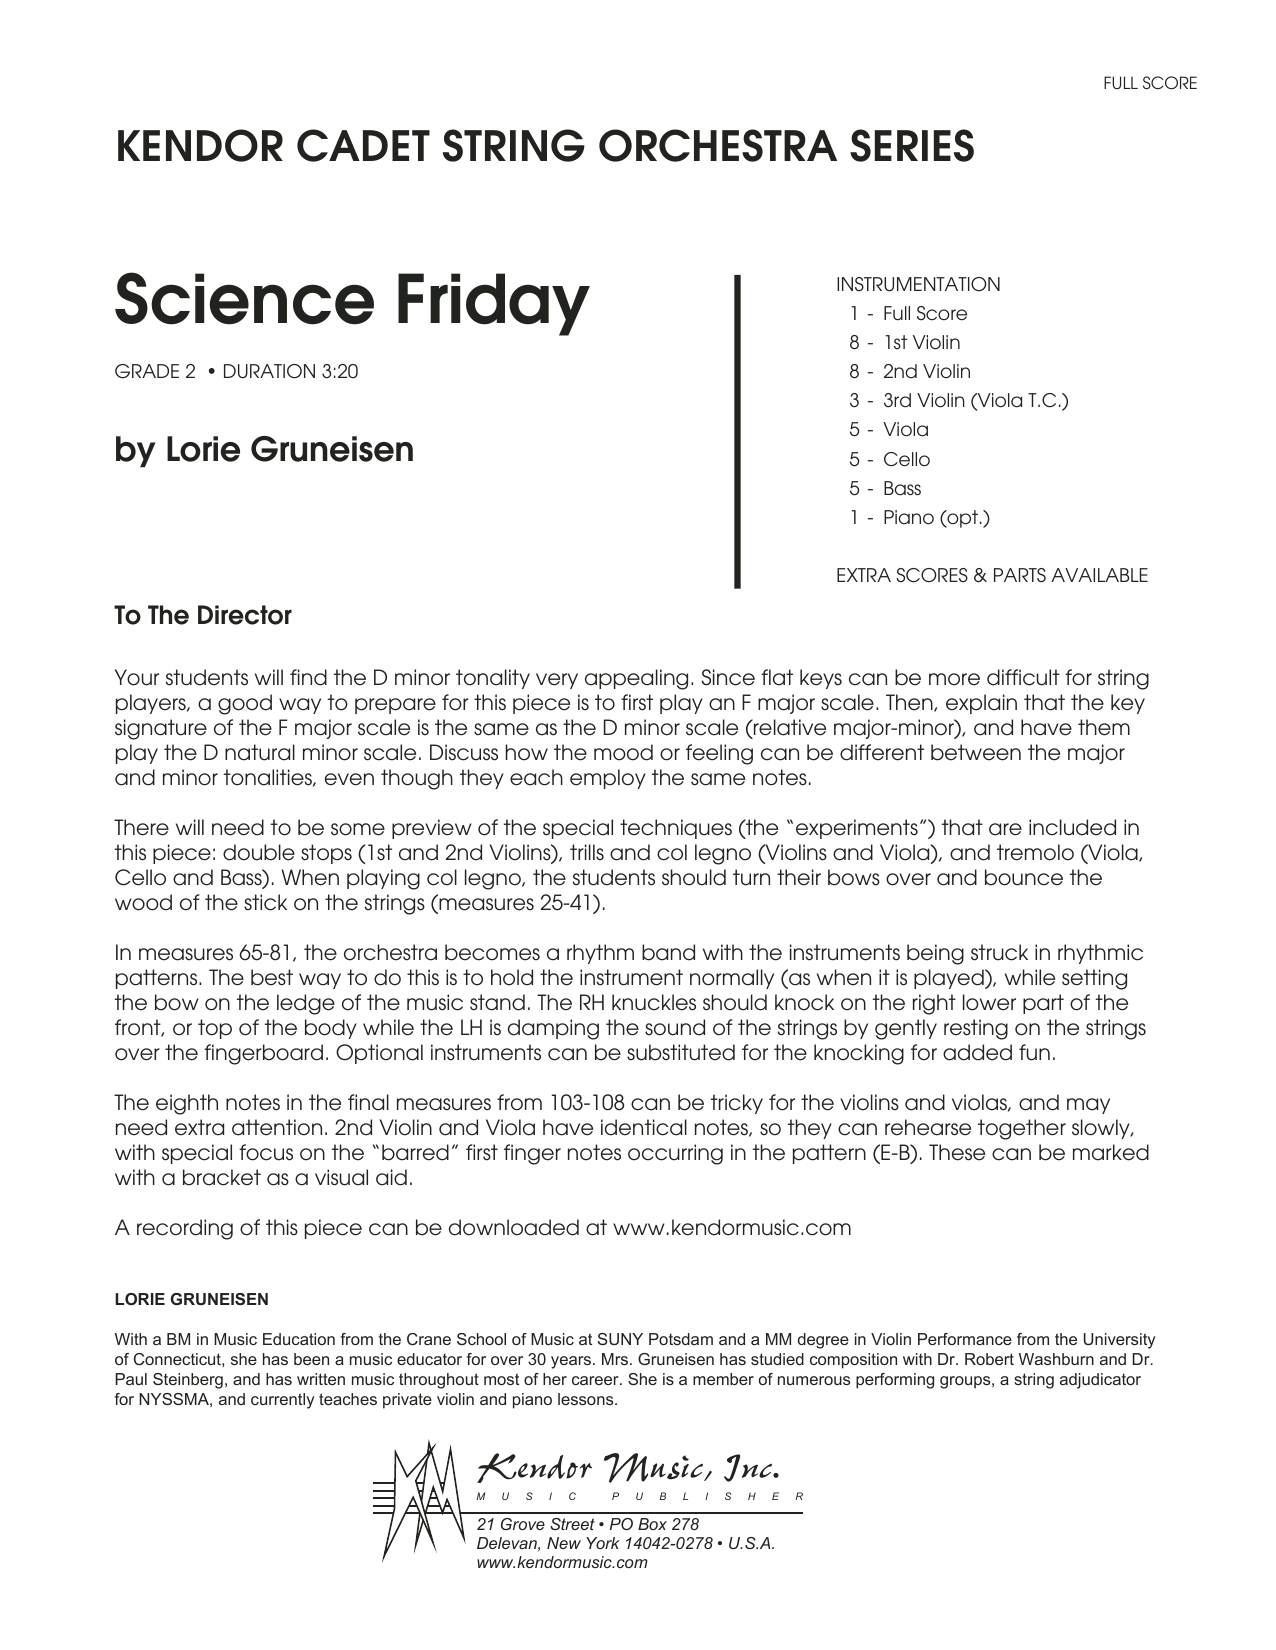 Science Friday - Full Score